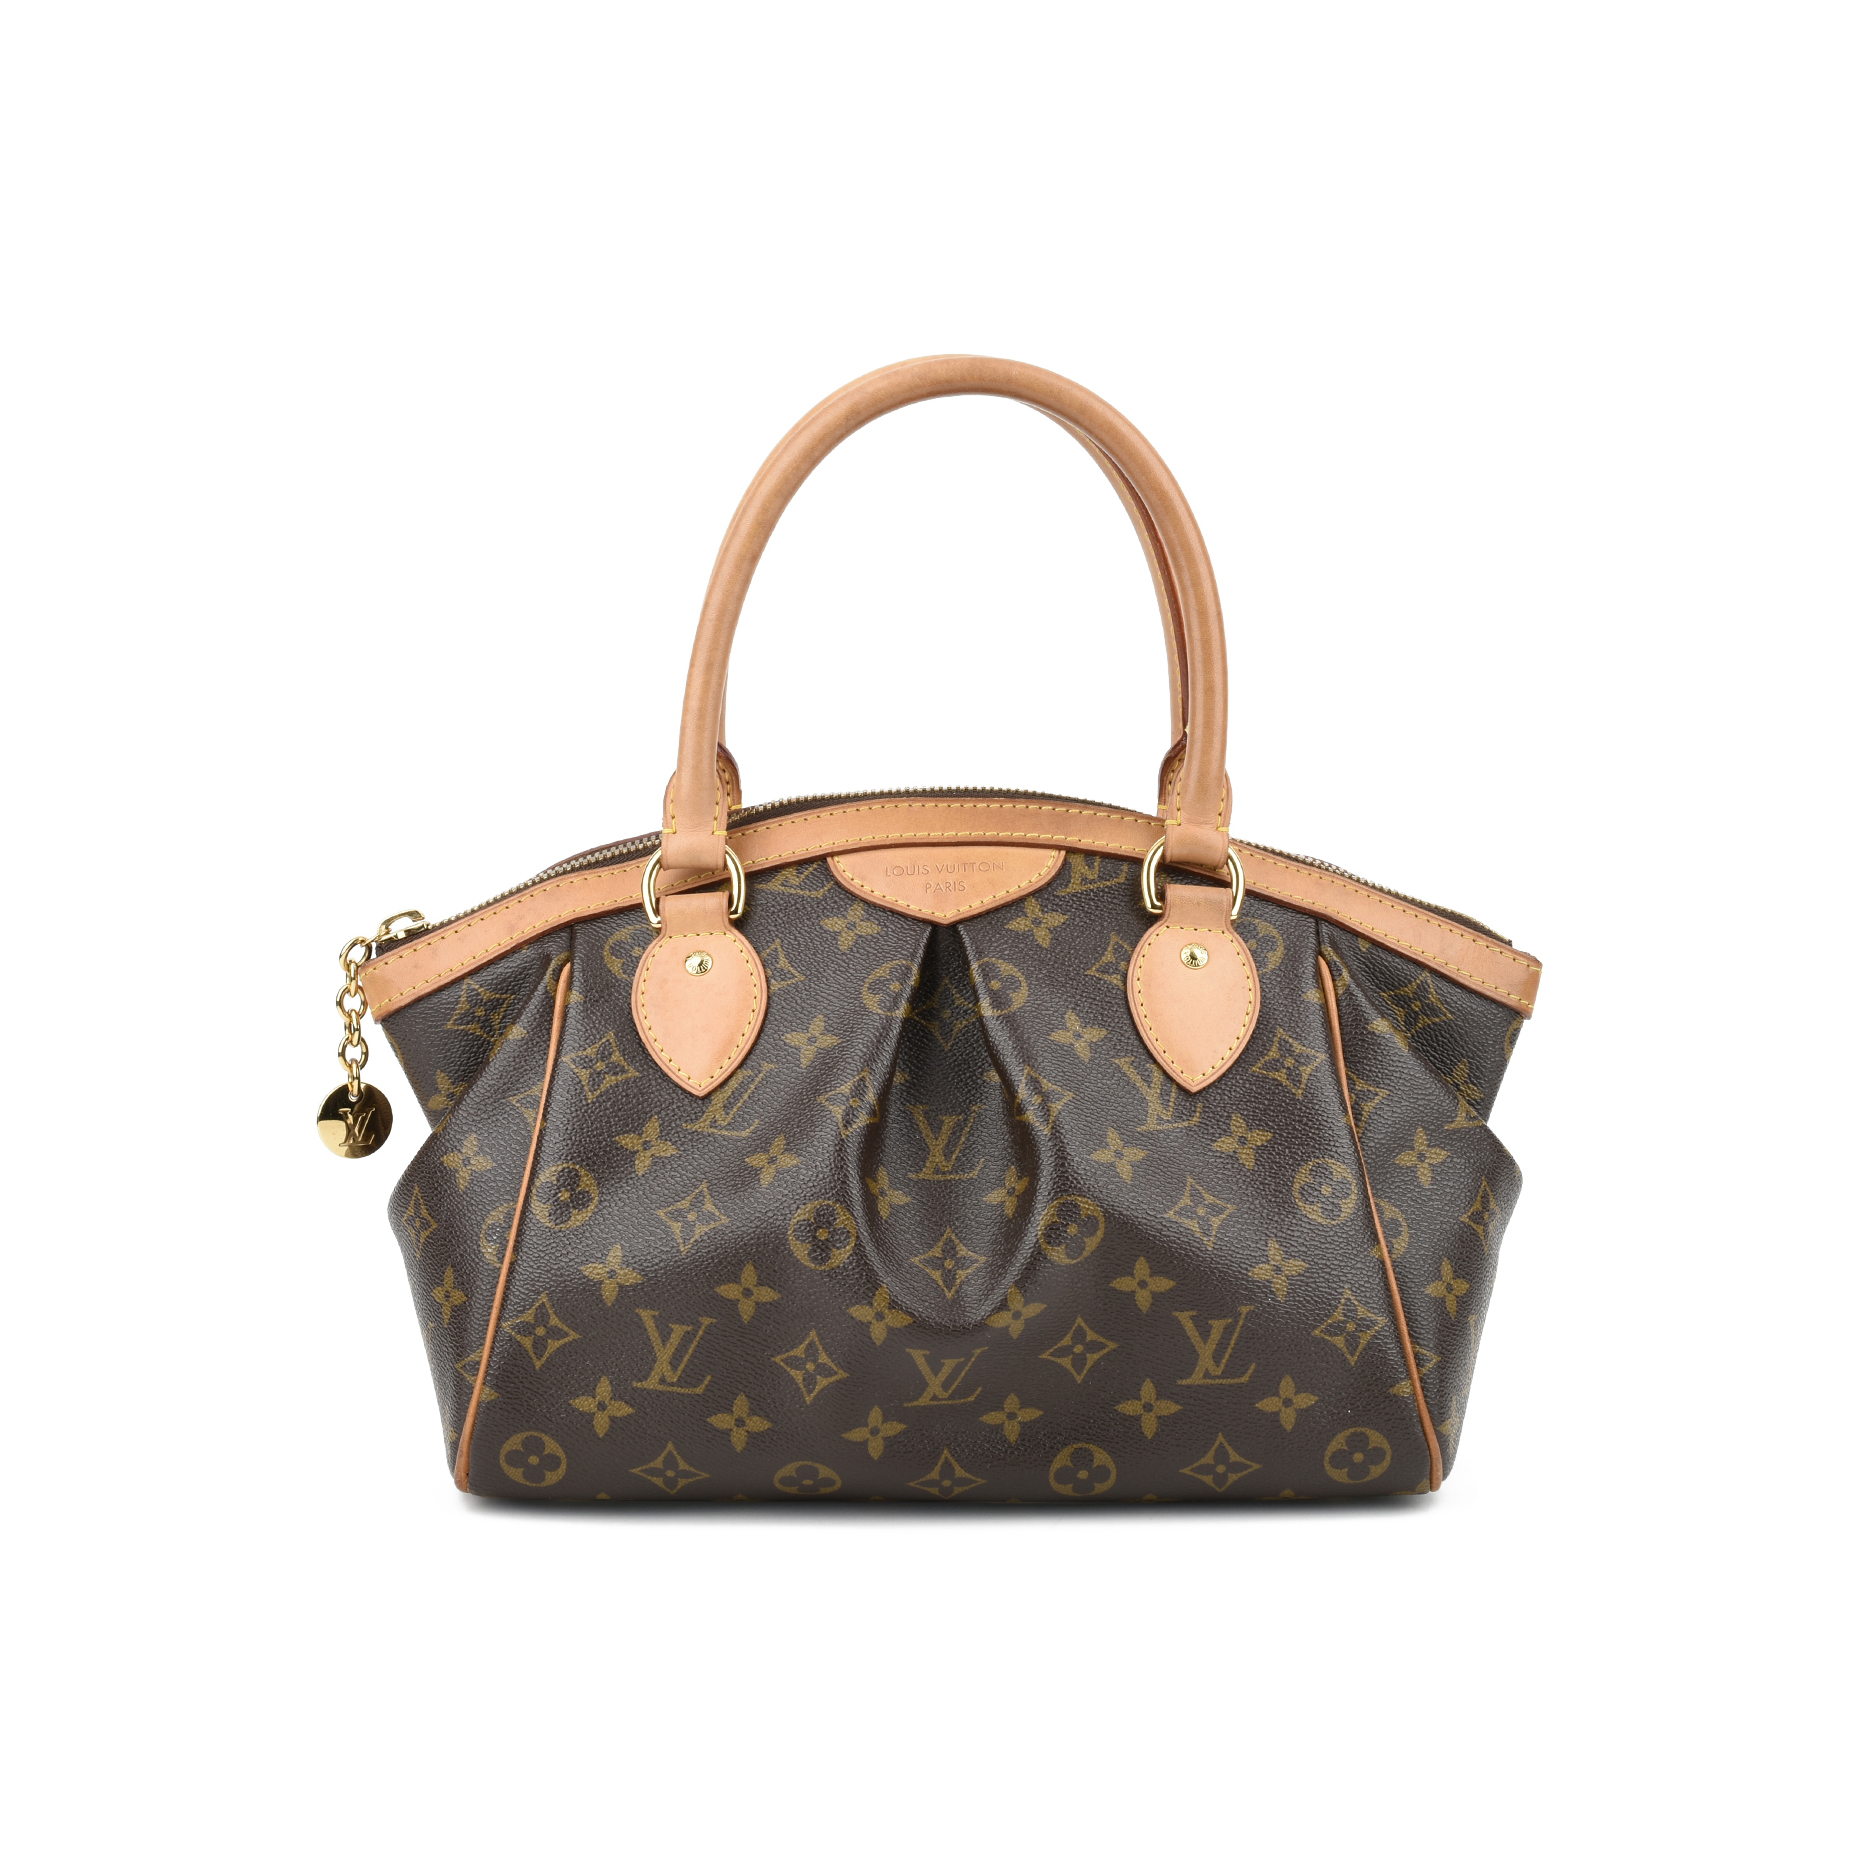 Authentic Second Hand Louis Vuitton Tivoli Monogram Bag